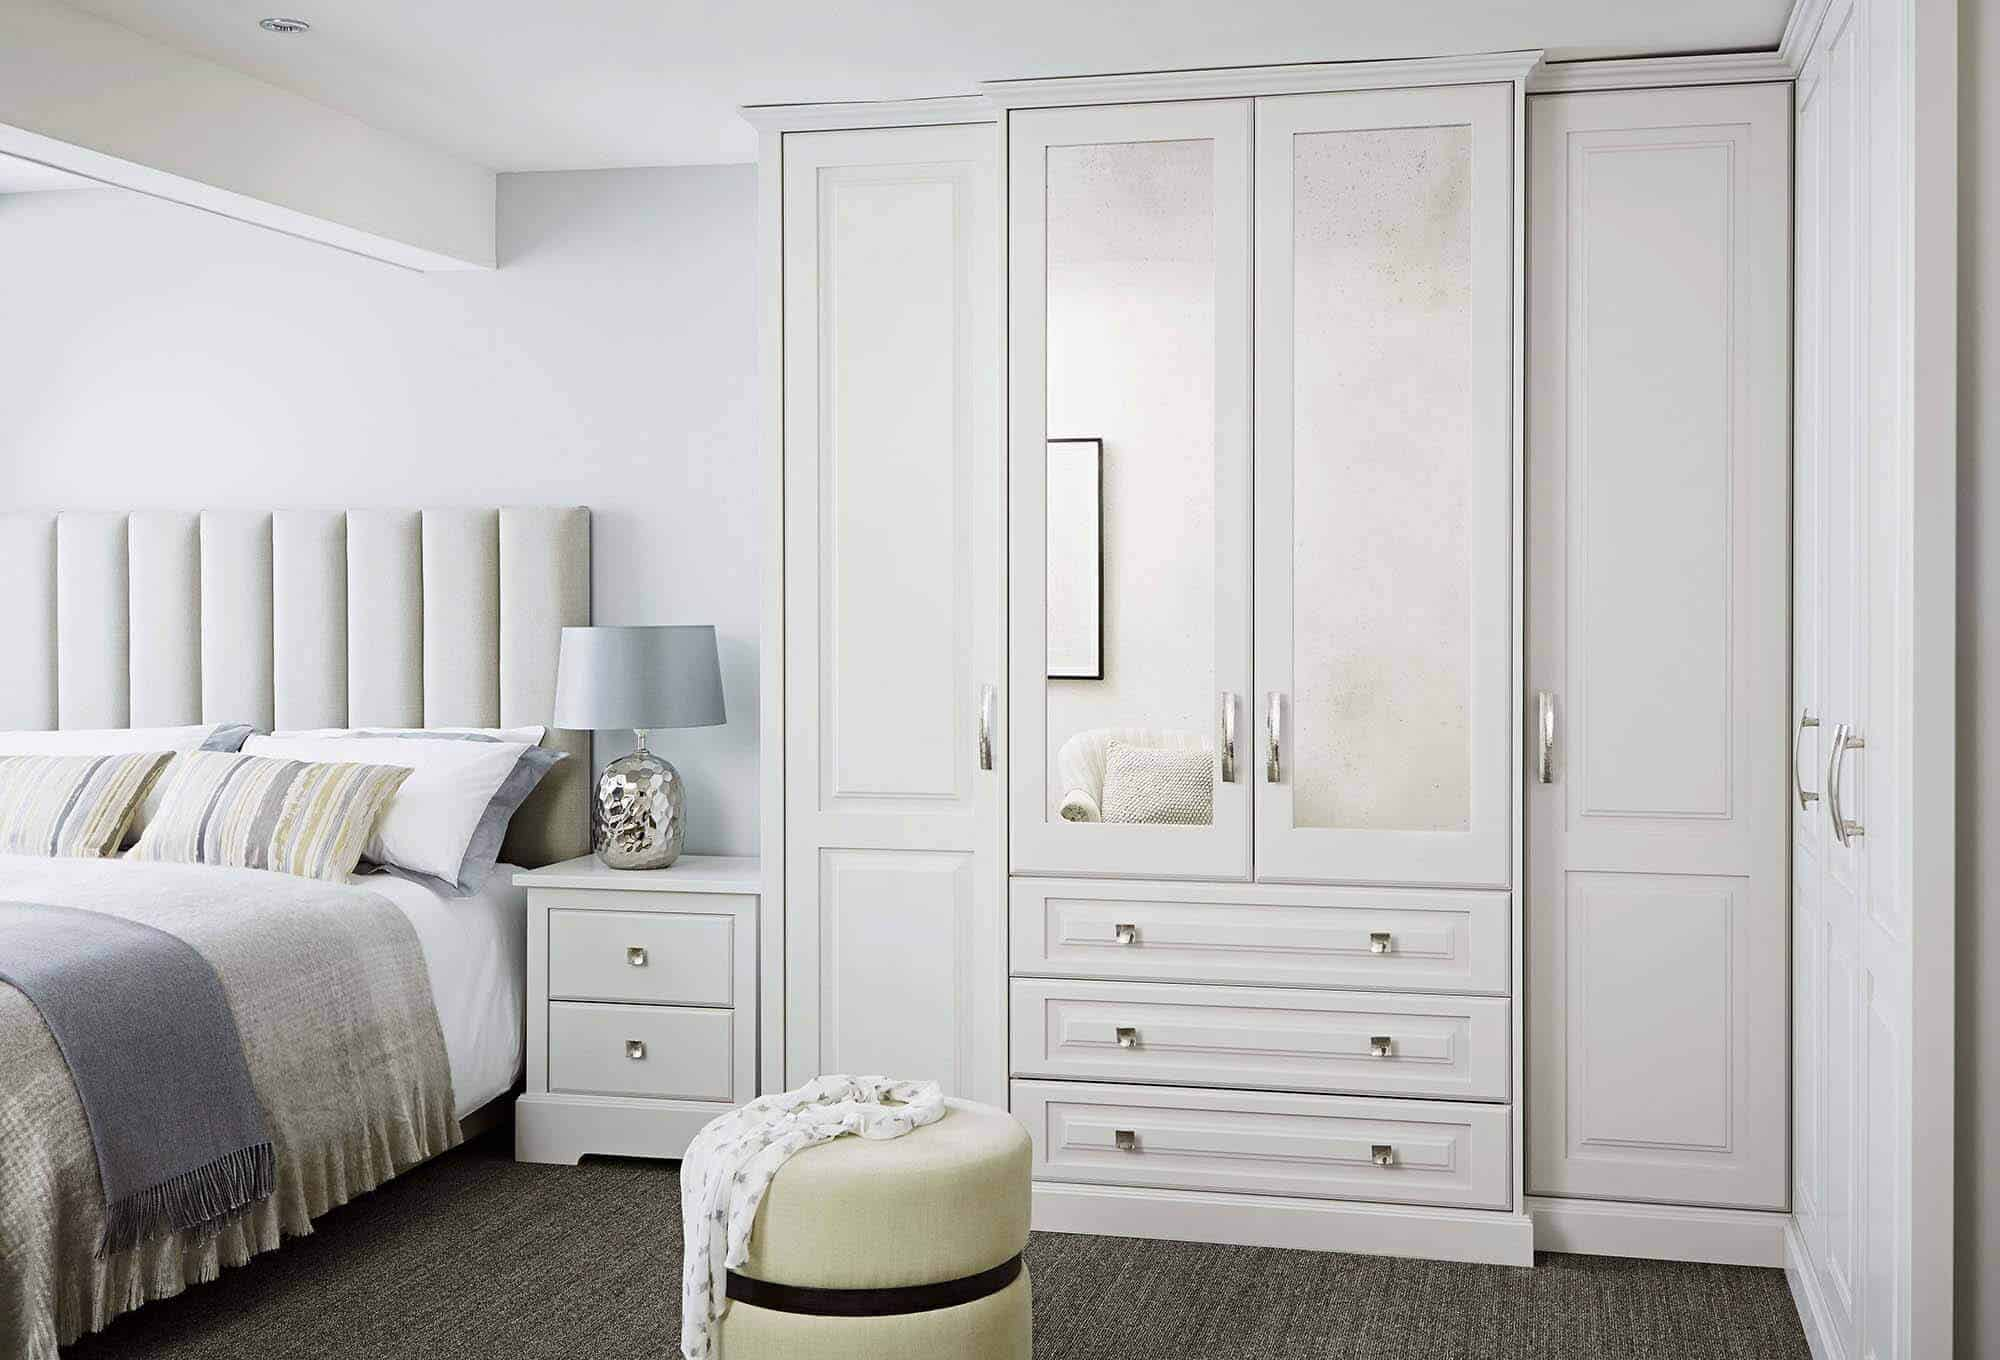 Classic Bedrooms Archives | John Lewis of Hungerford